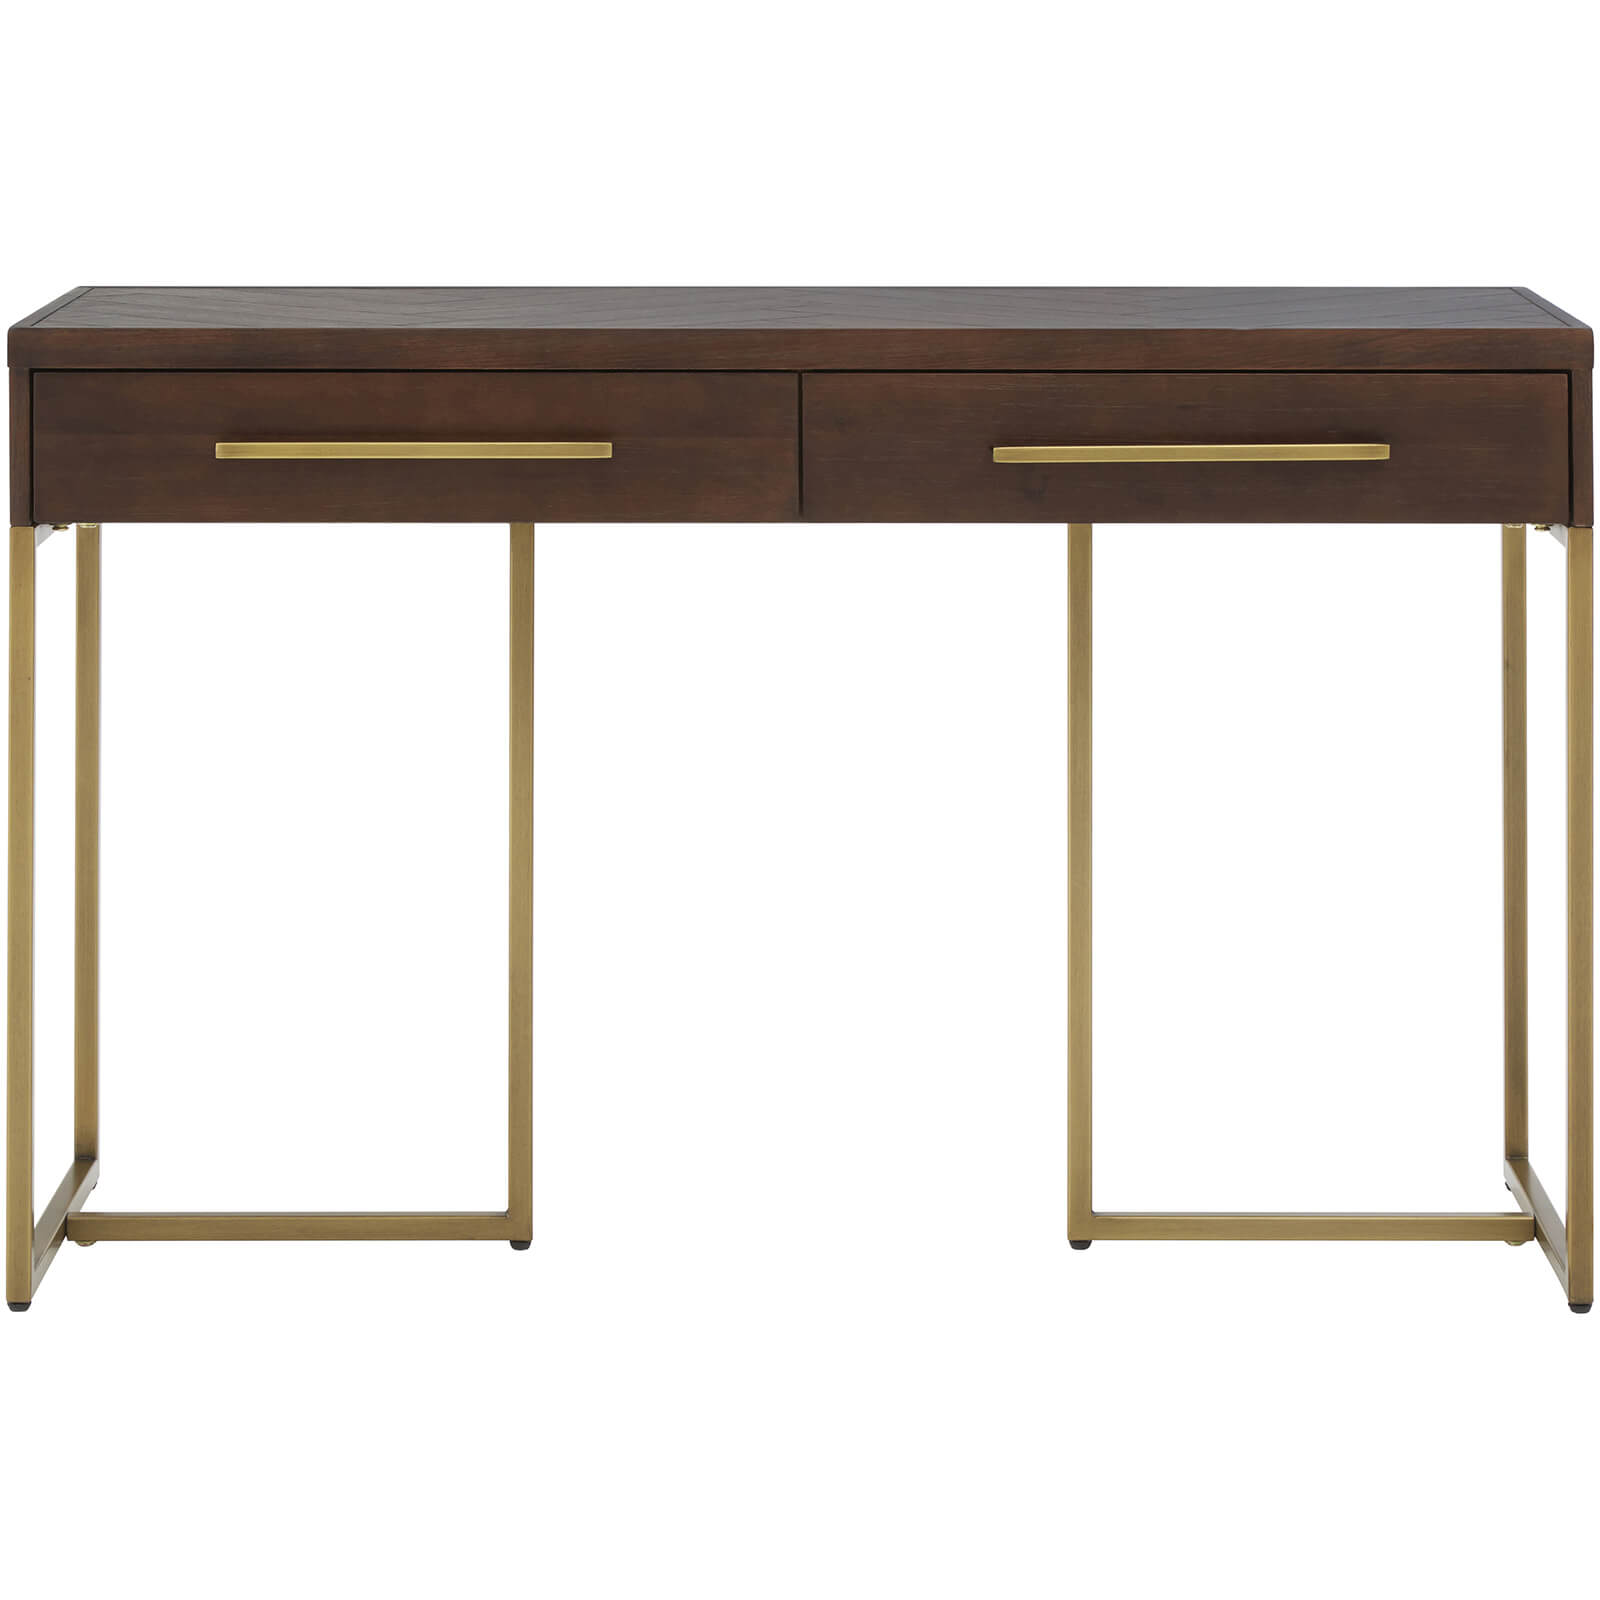 Fifty Five South Brando Two Drawer Console Table - Acacia Veneer/Antique Brass